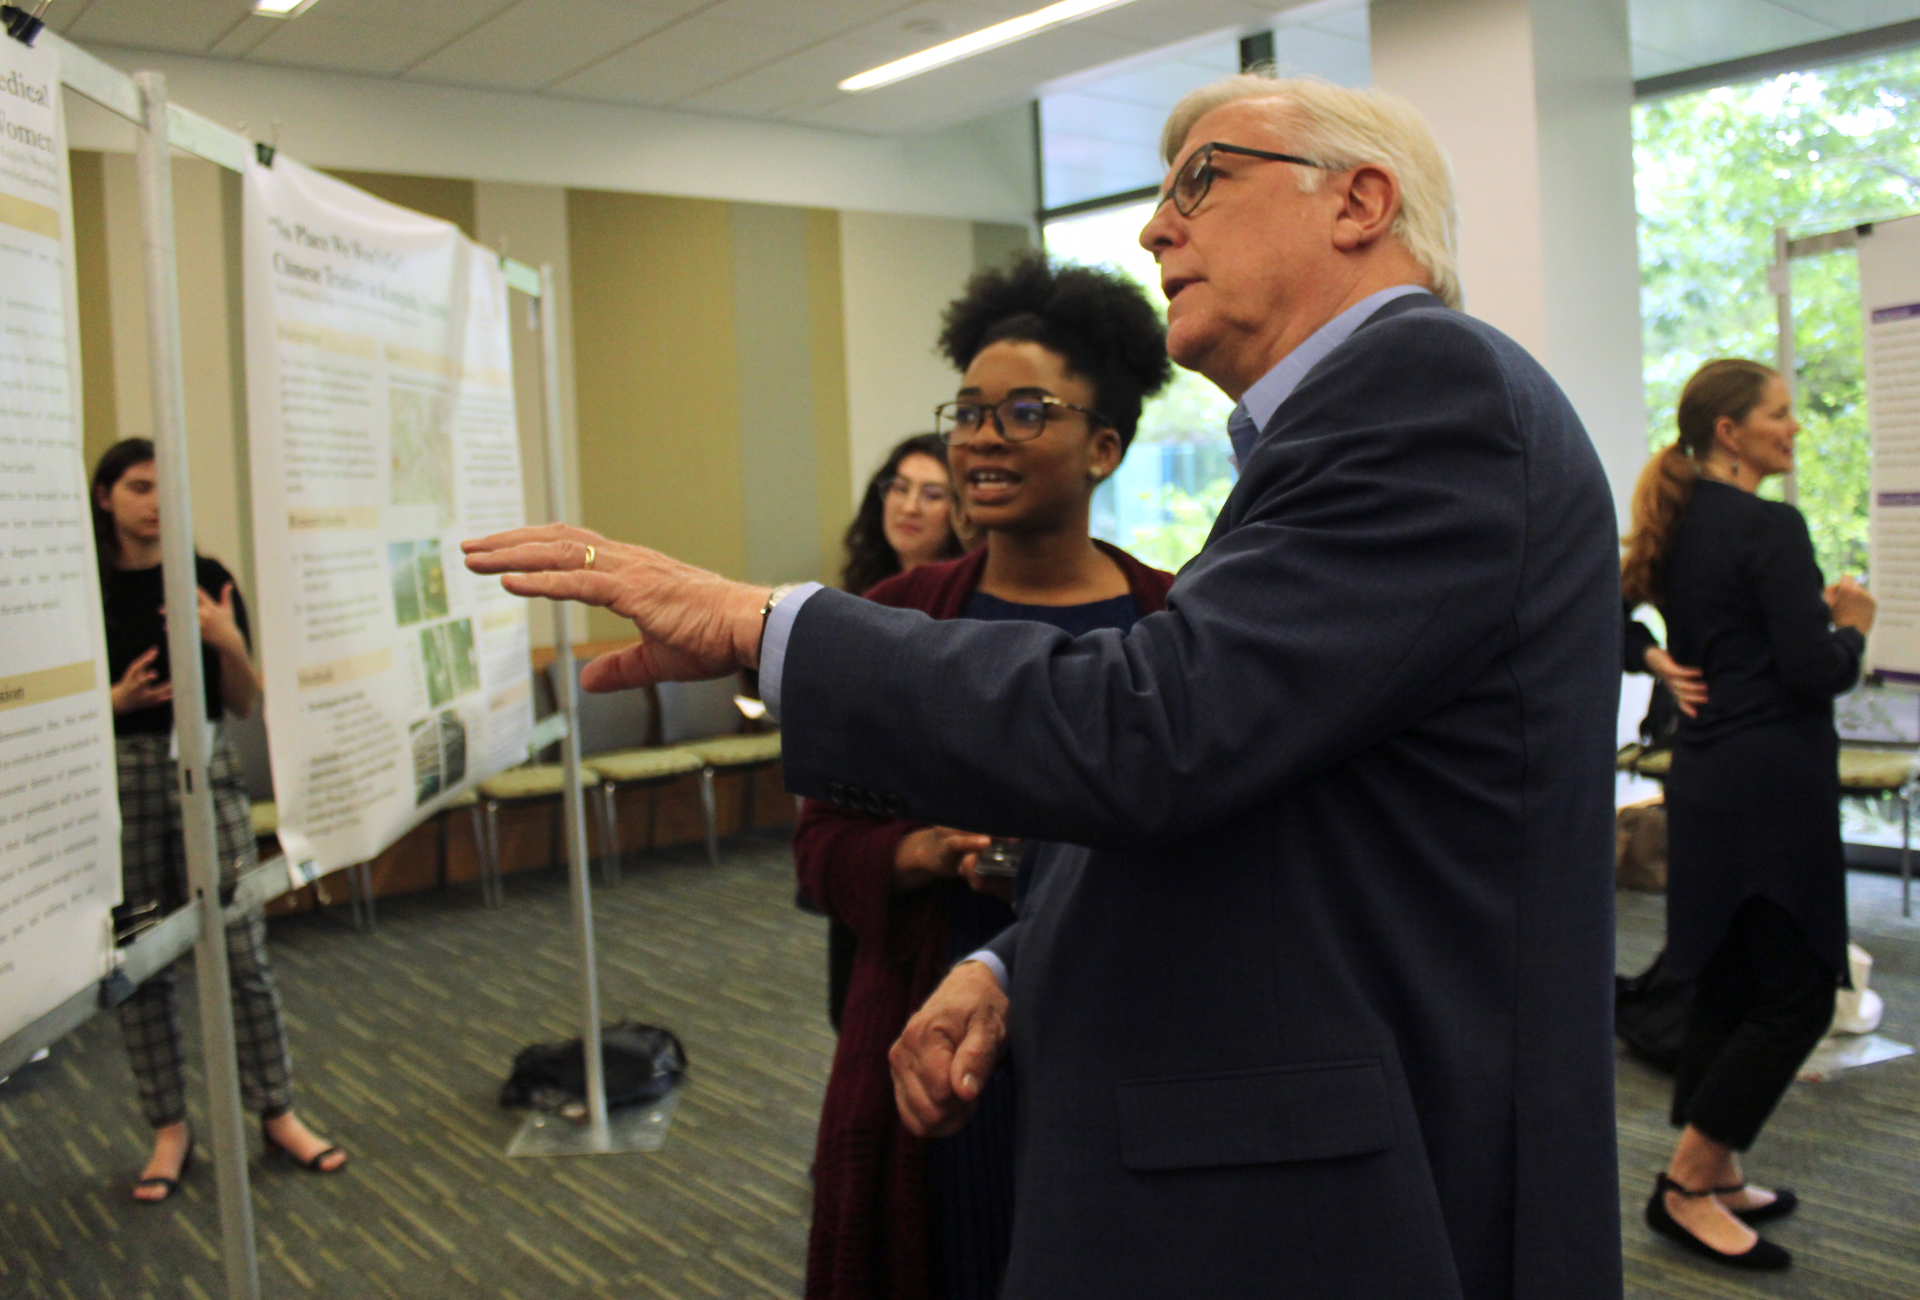 Dean Randy Diehl gestures at the poster of Tomaia Pamplin during the event.